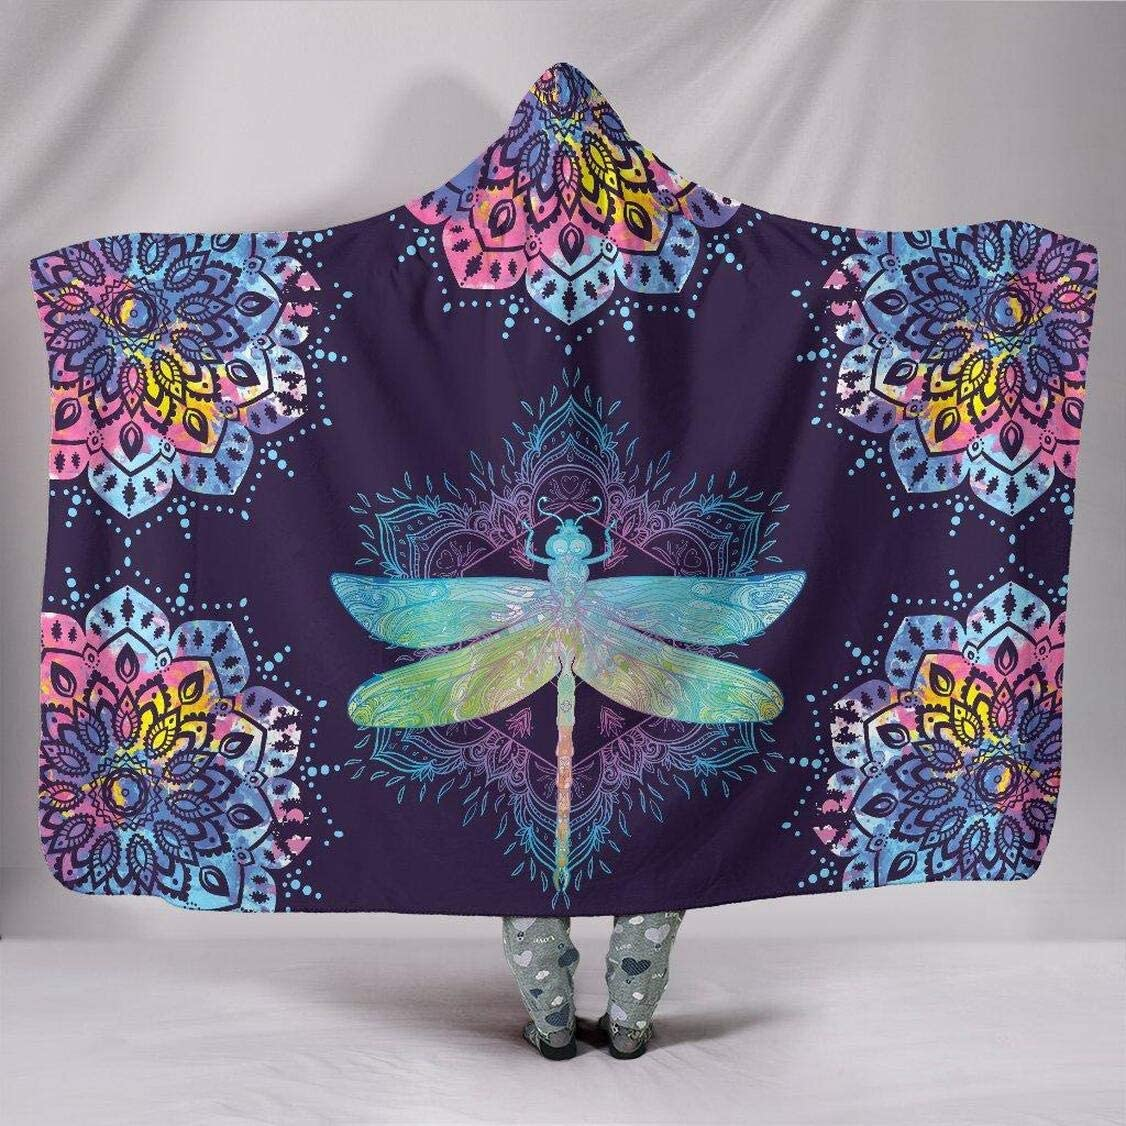 Large-scale sale Personalized Dragonfly El Paso Mall Mandala Hoodie Wearable Blanket Soft Warm